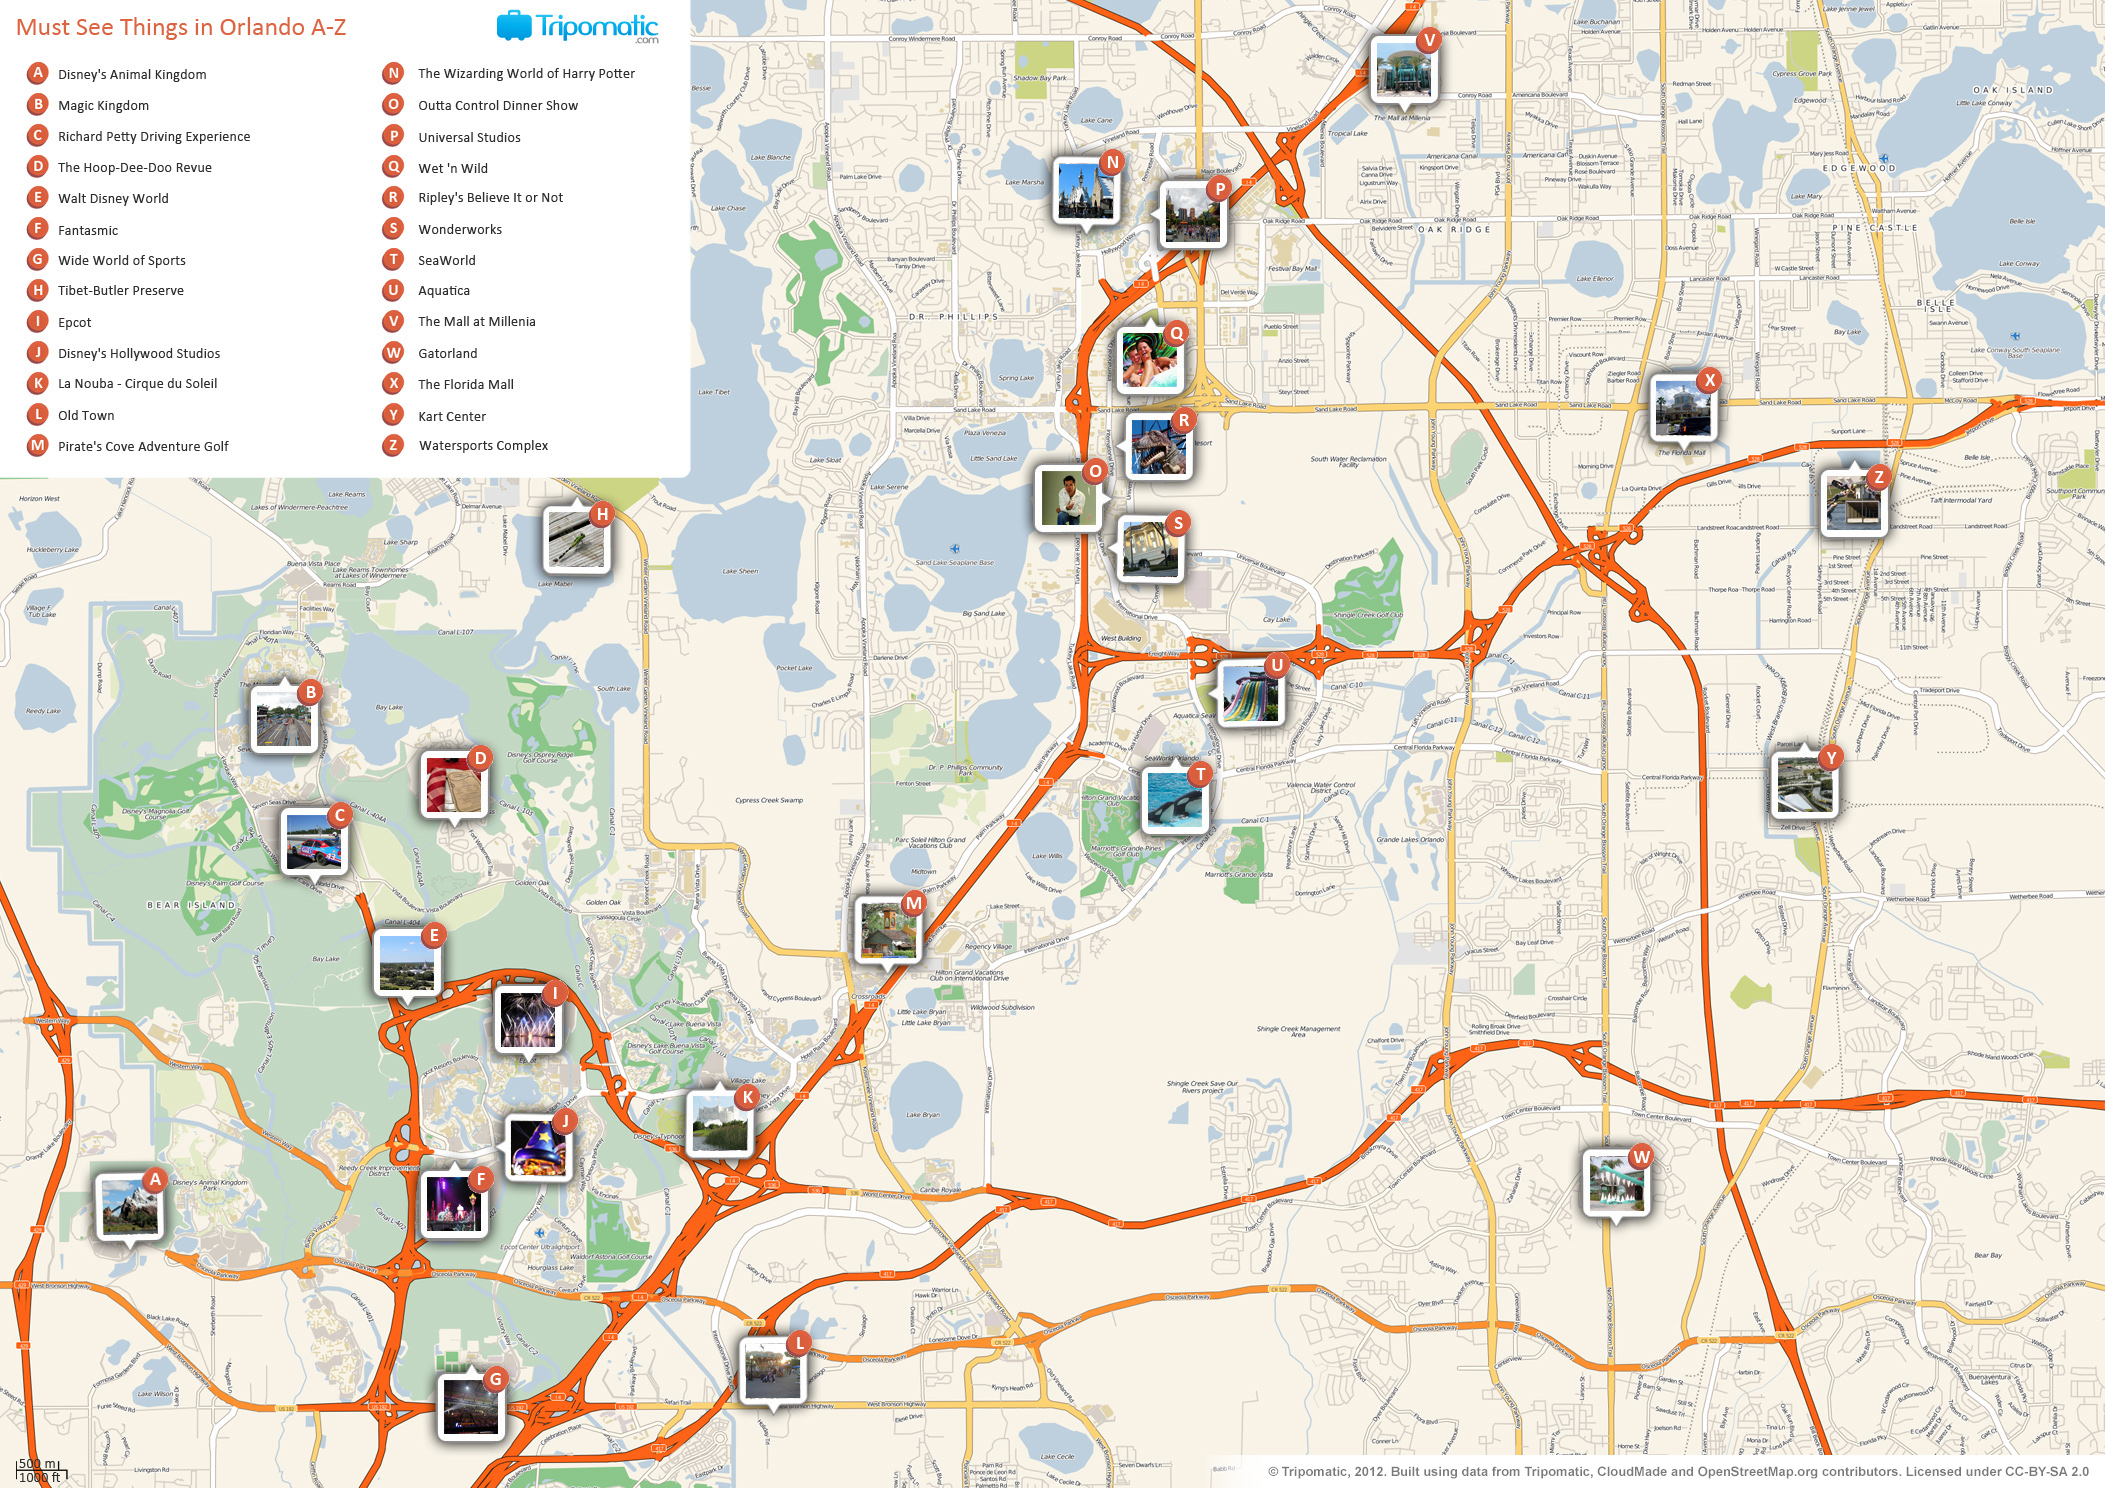 FileOrlando printable tourist attractions mapjpg Wikimedia Commons – Florida Tourist Attractions Map